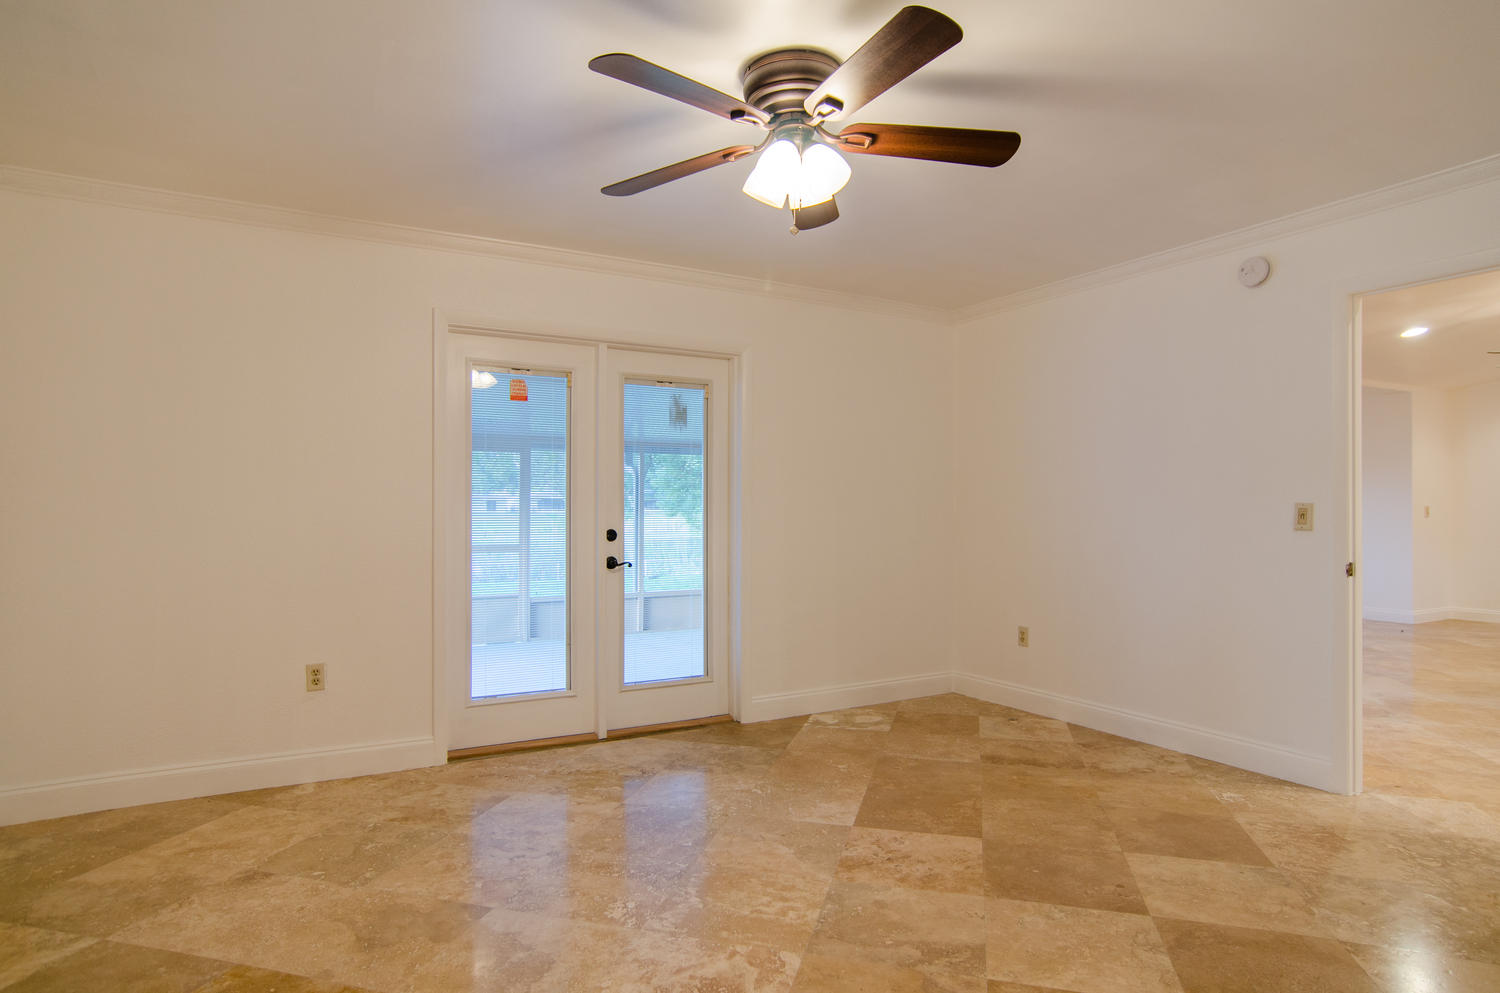 Home For Sale 4 Bed 3 Bath Home St Petersburg Fl 33709